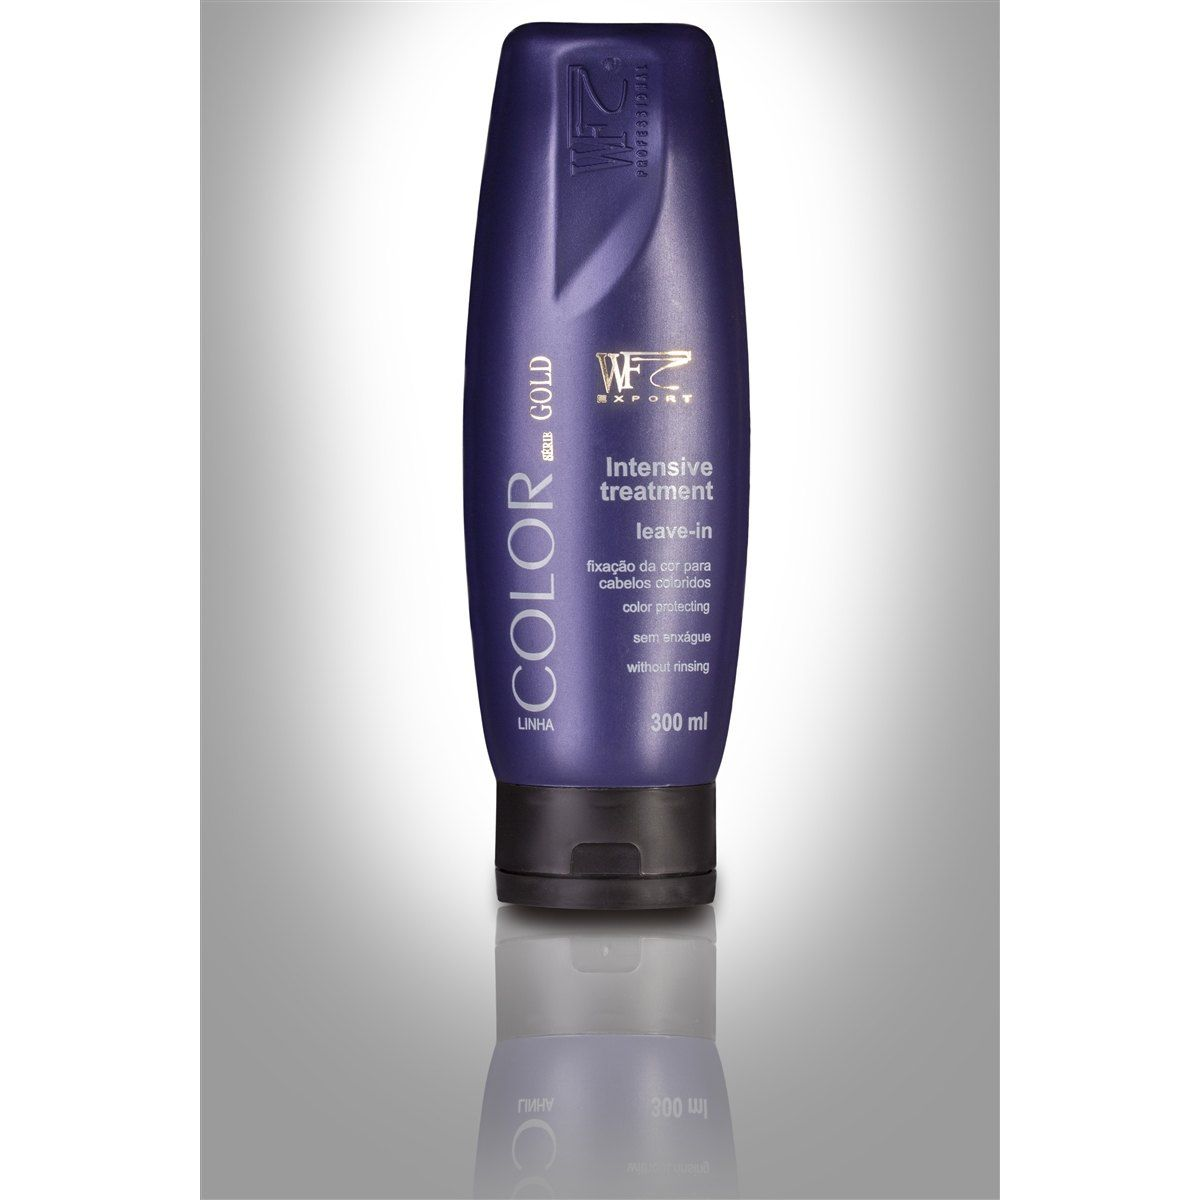 COLOR - LEAVE-IN TREATMENT INTENSIVE WF COSMETICOS 300ML